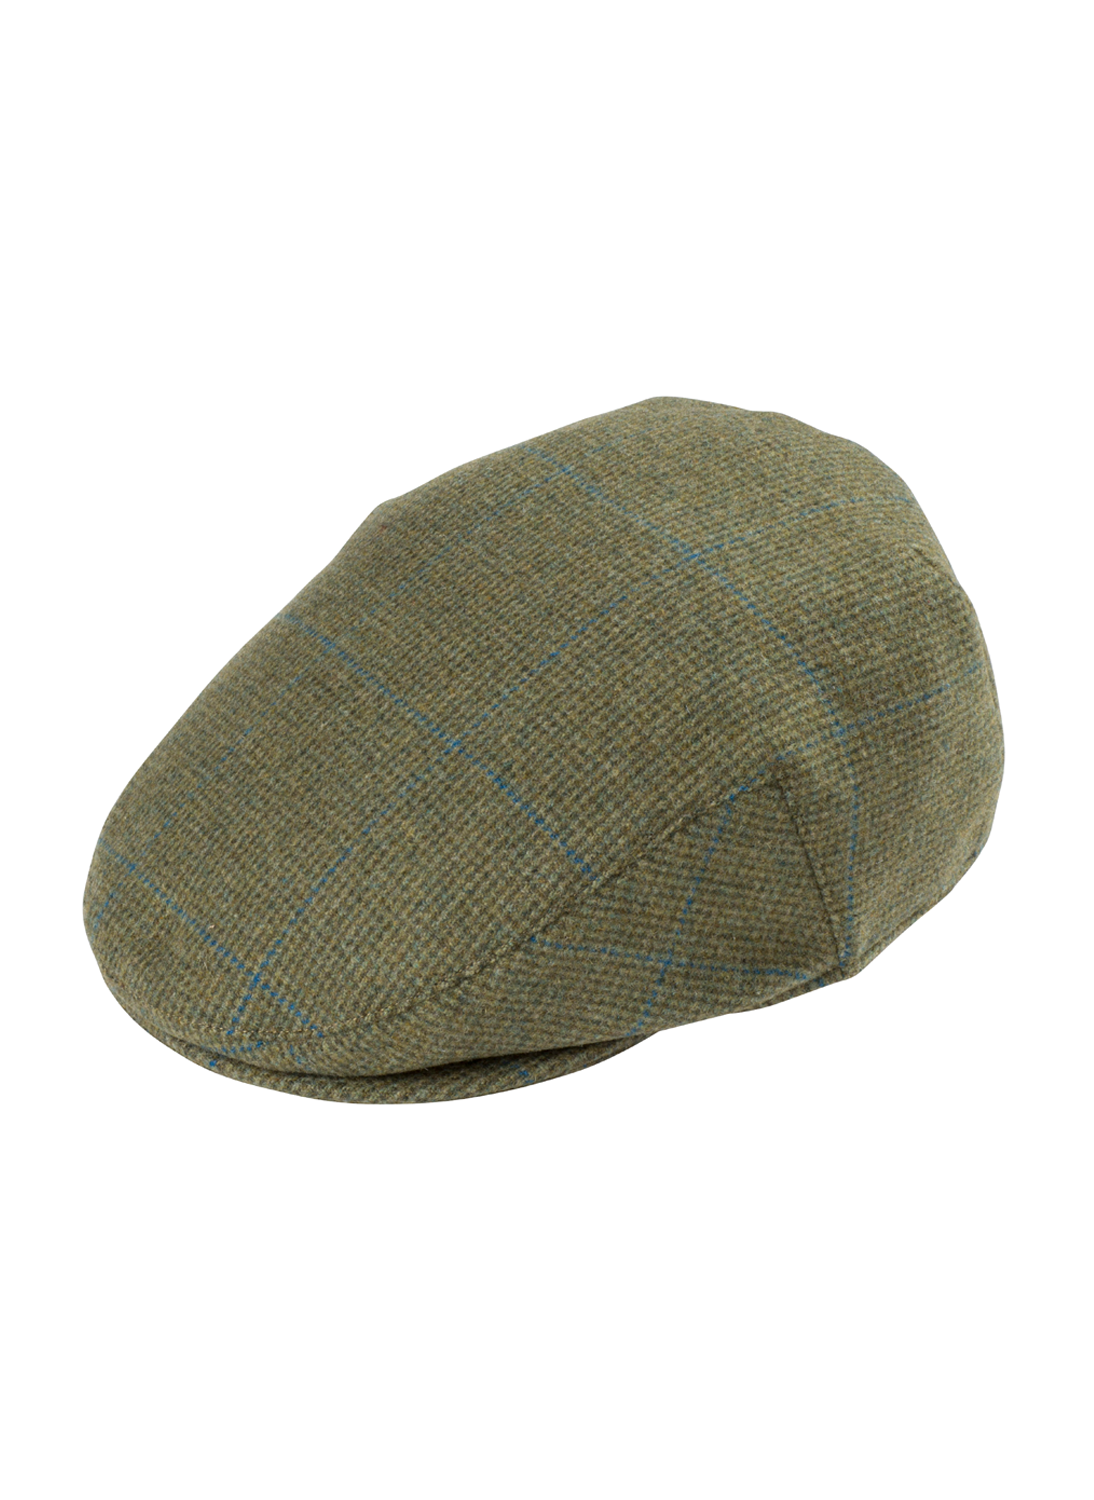 1e3f5e2263213 Alan Paine Combrook Lagoon Tweed Flat Cap - Bredon Hill Country